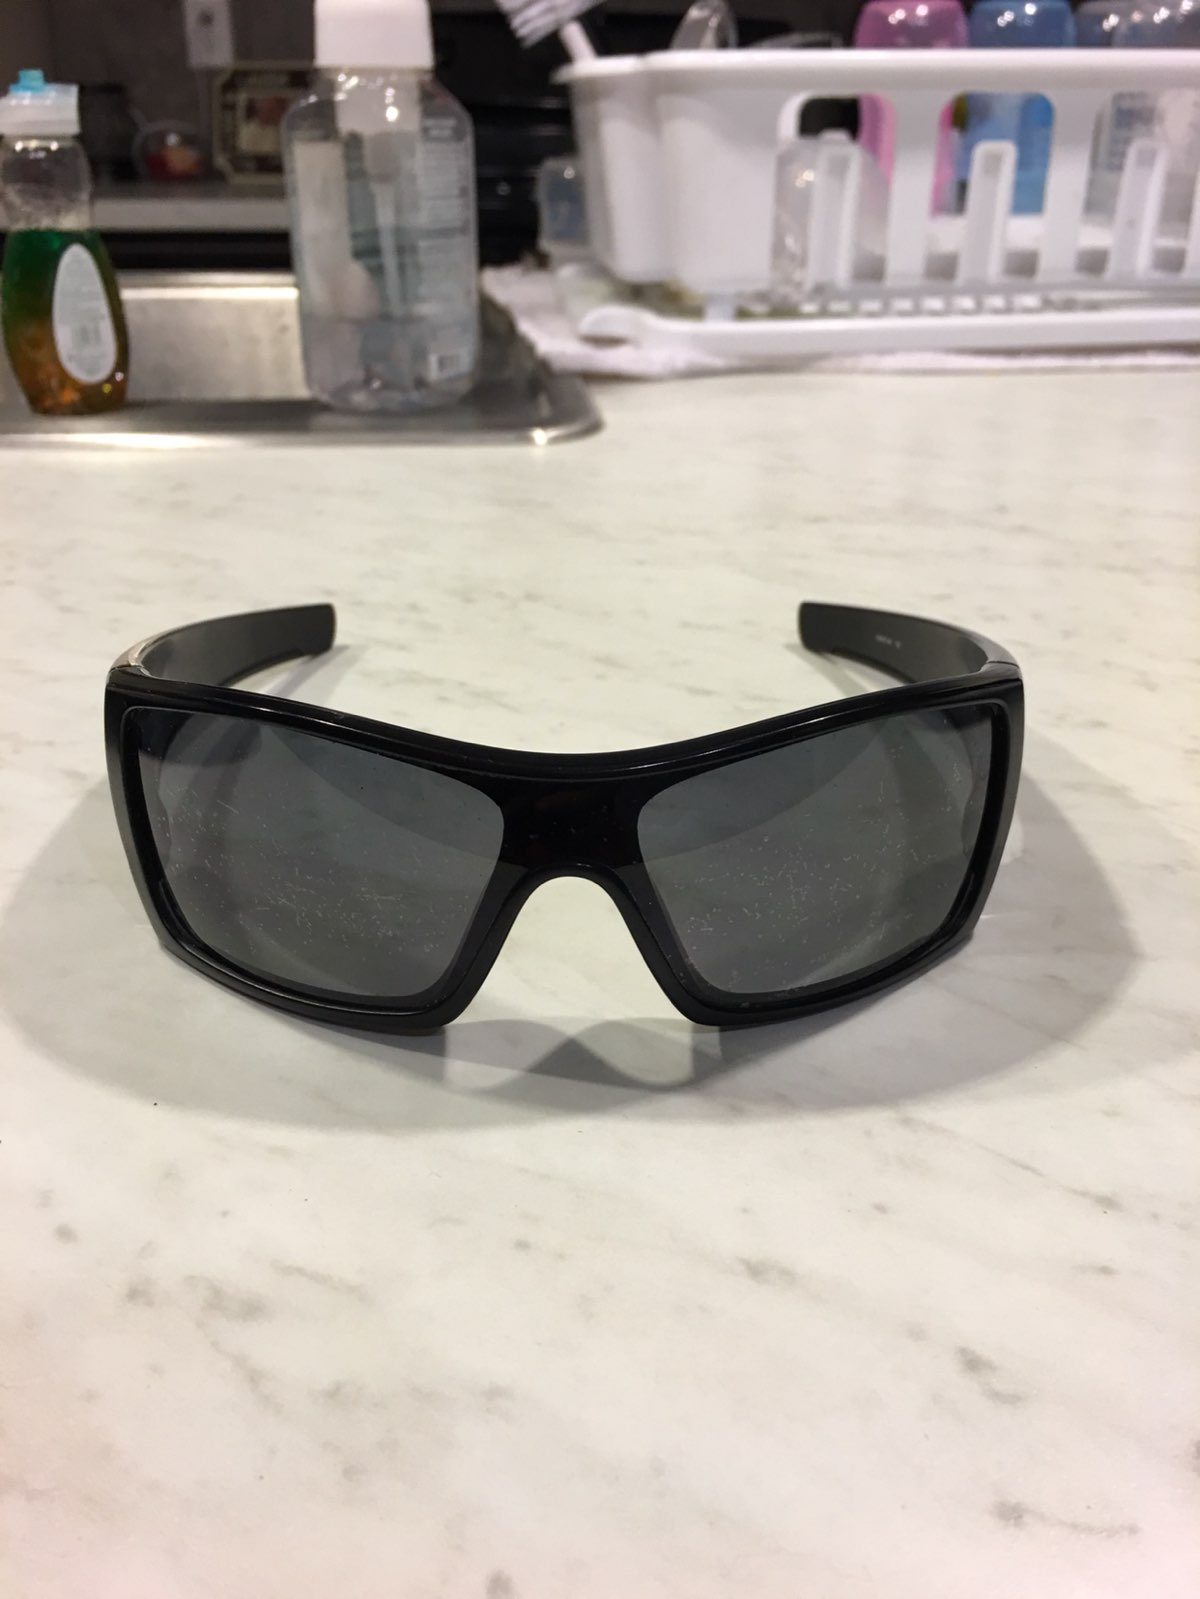 2420c00f39d Oakley Batwolf - Mercari  BUY   SELL THINGS YOU LOVE